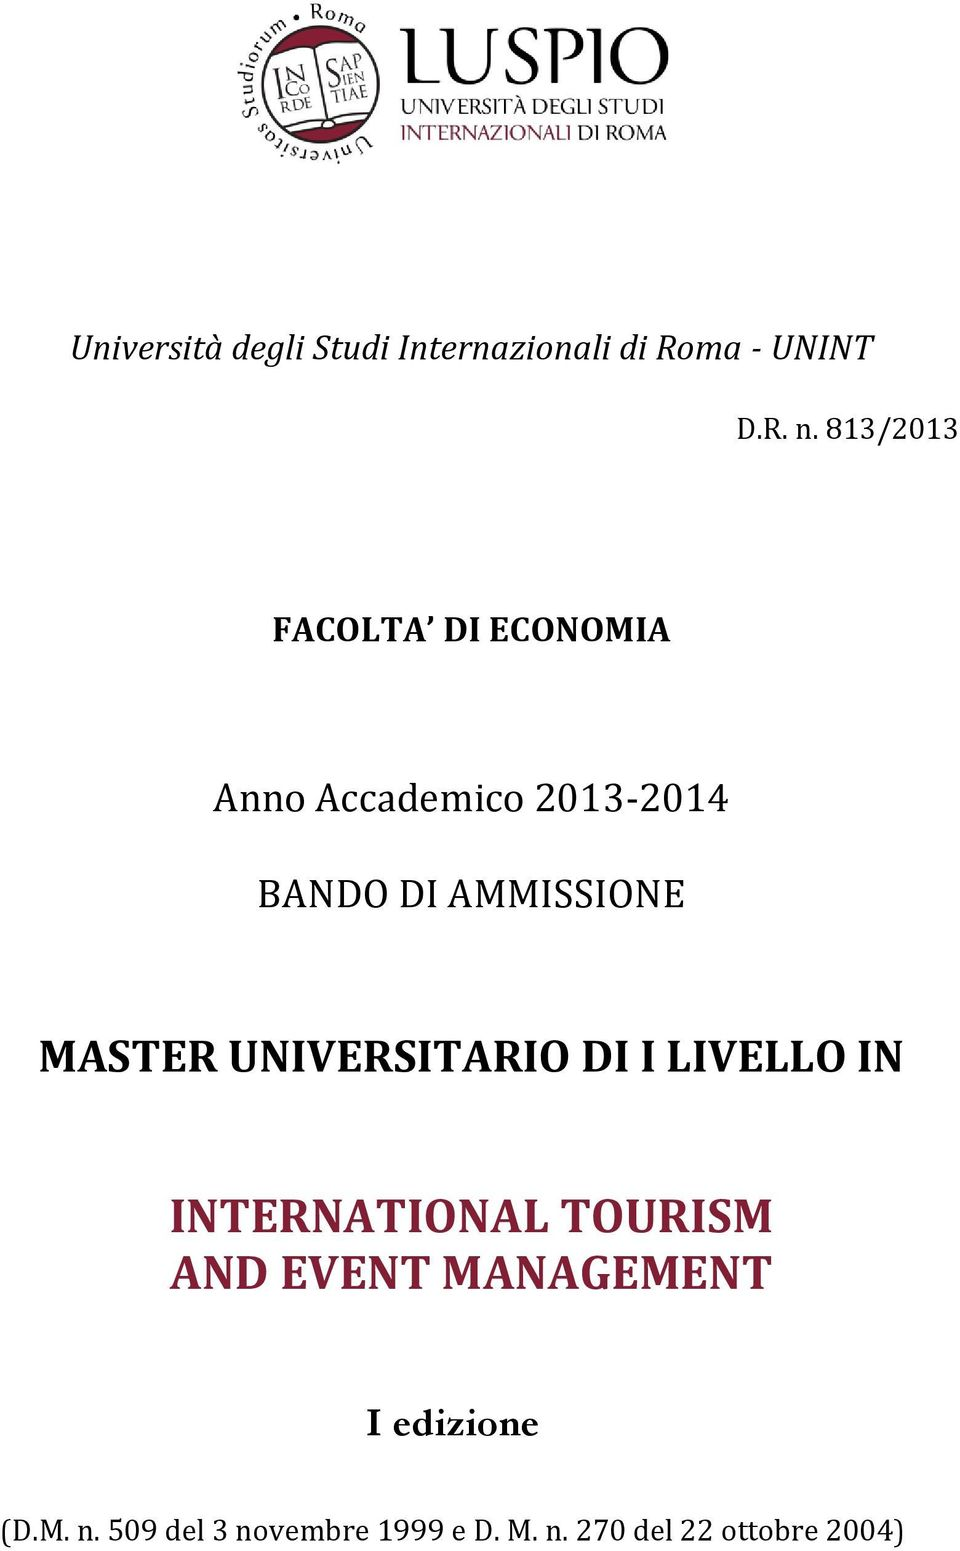 AMMISSIONE MASTER UNIVERSITARIO DI I LIVELLO IN INTERNATIONAL TOURISM AND